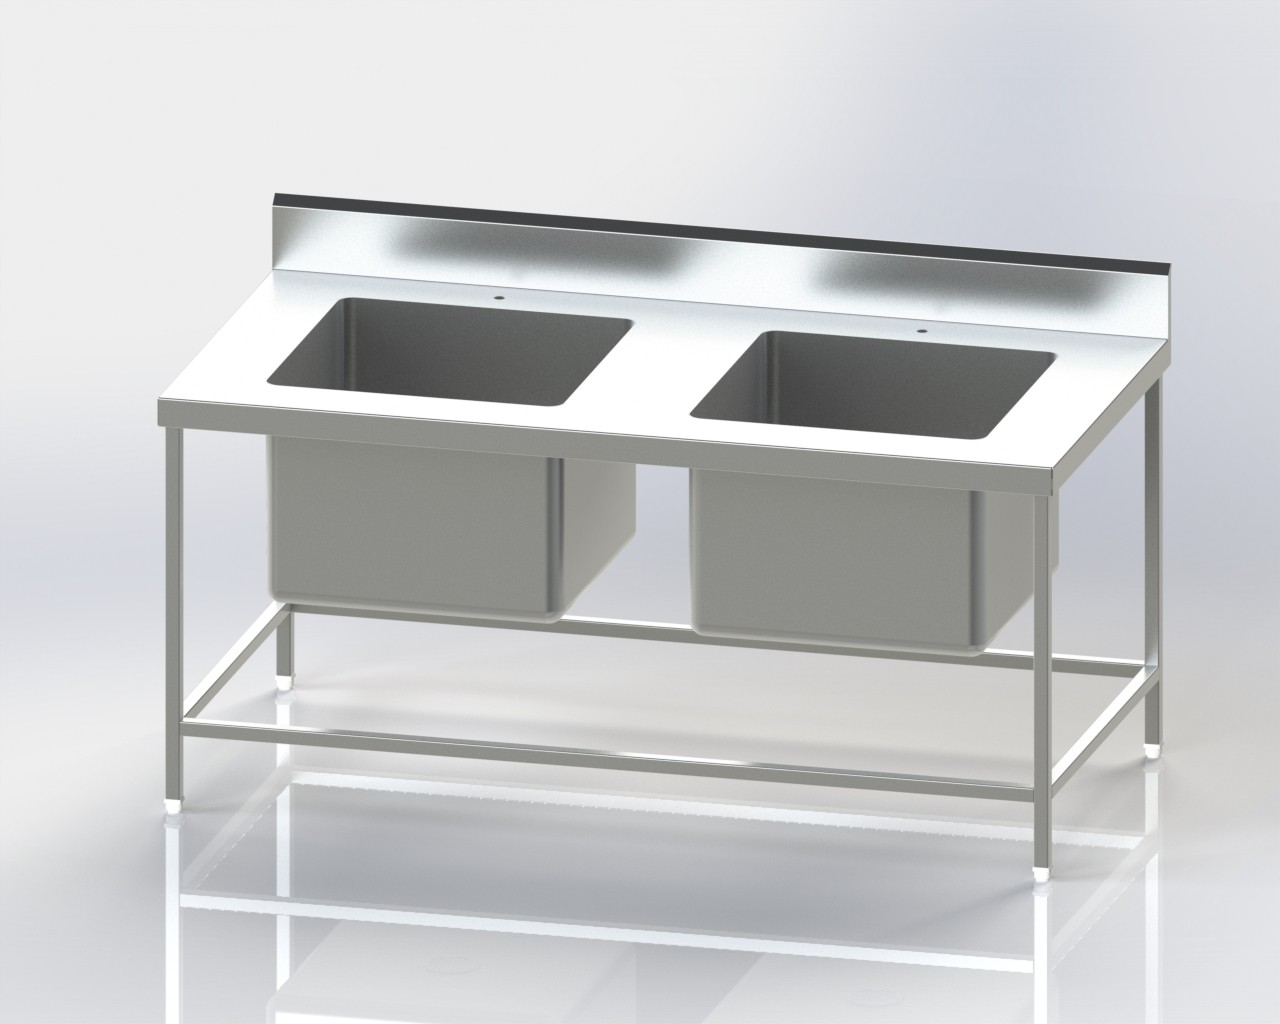 Two Sink Pot Wash Unit